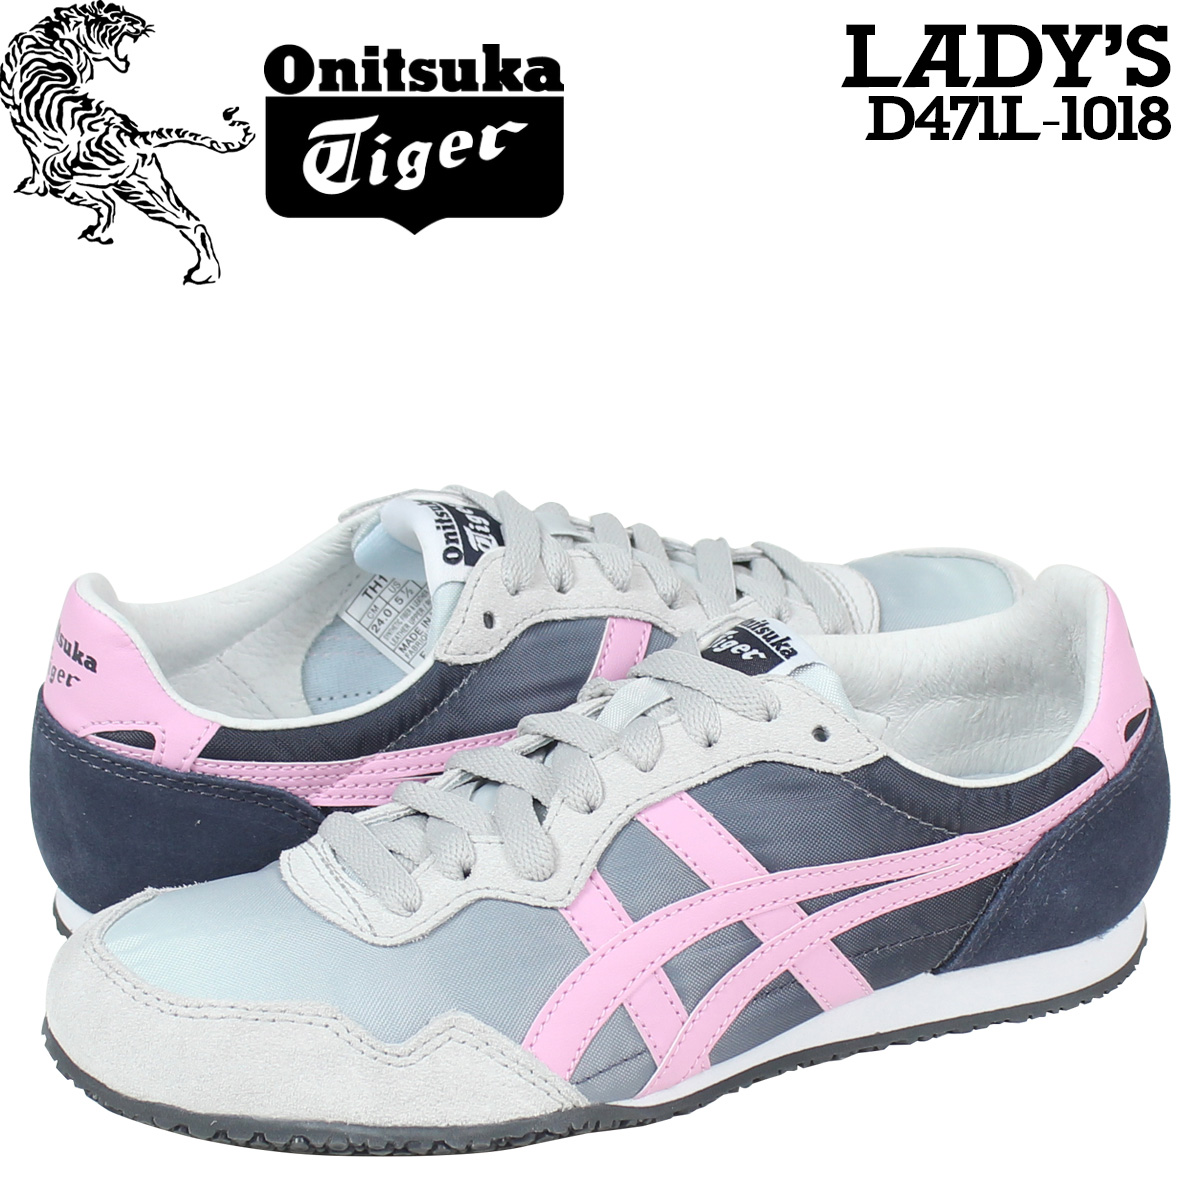 designer fashion 00b4f adf36 [SOLD OUT] ONITSUKA Tiger ASICs Onitsuka Tiger asics Serrano sneakers  Womens SERRANO D 471L-1018 shoe grey